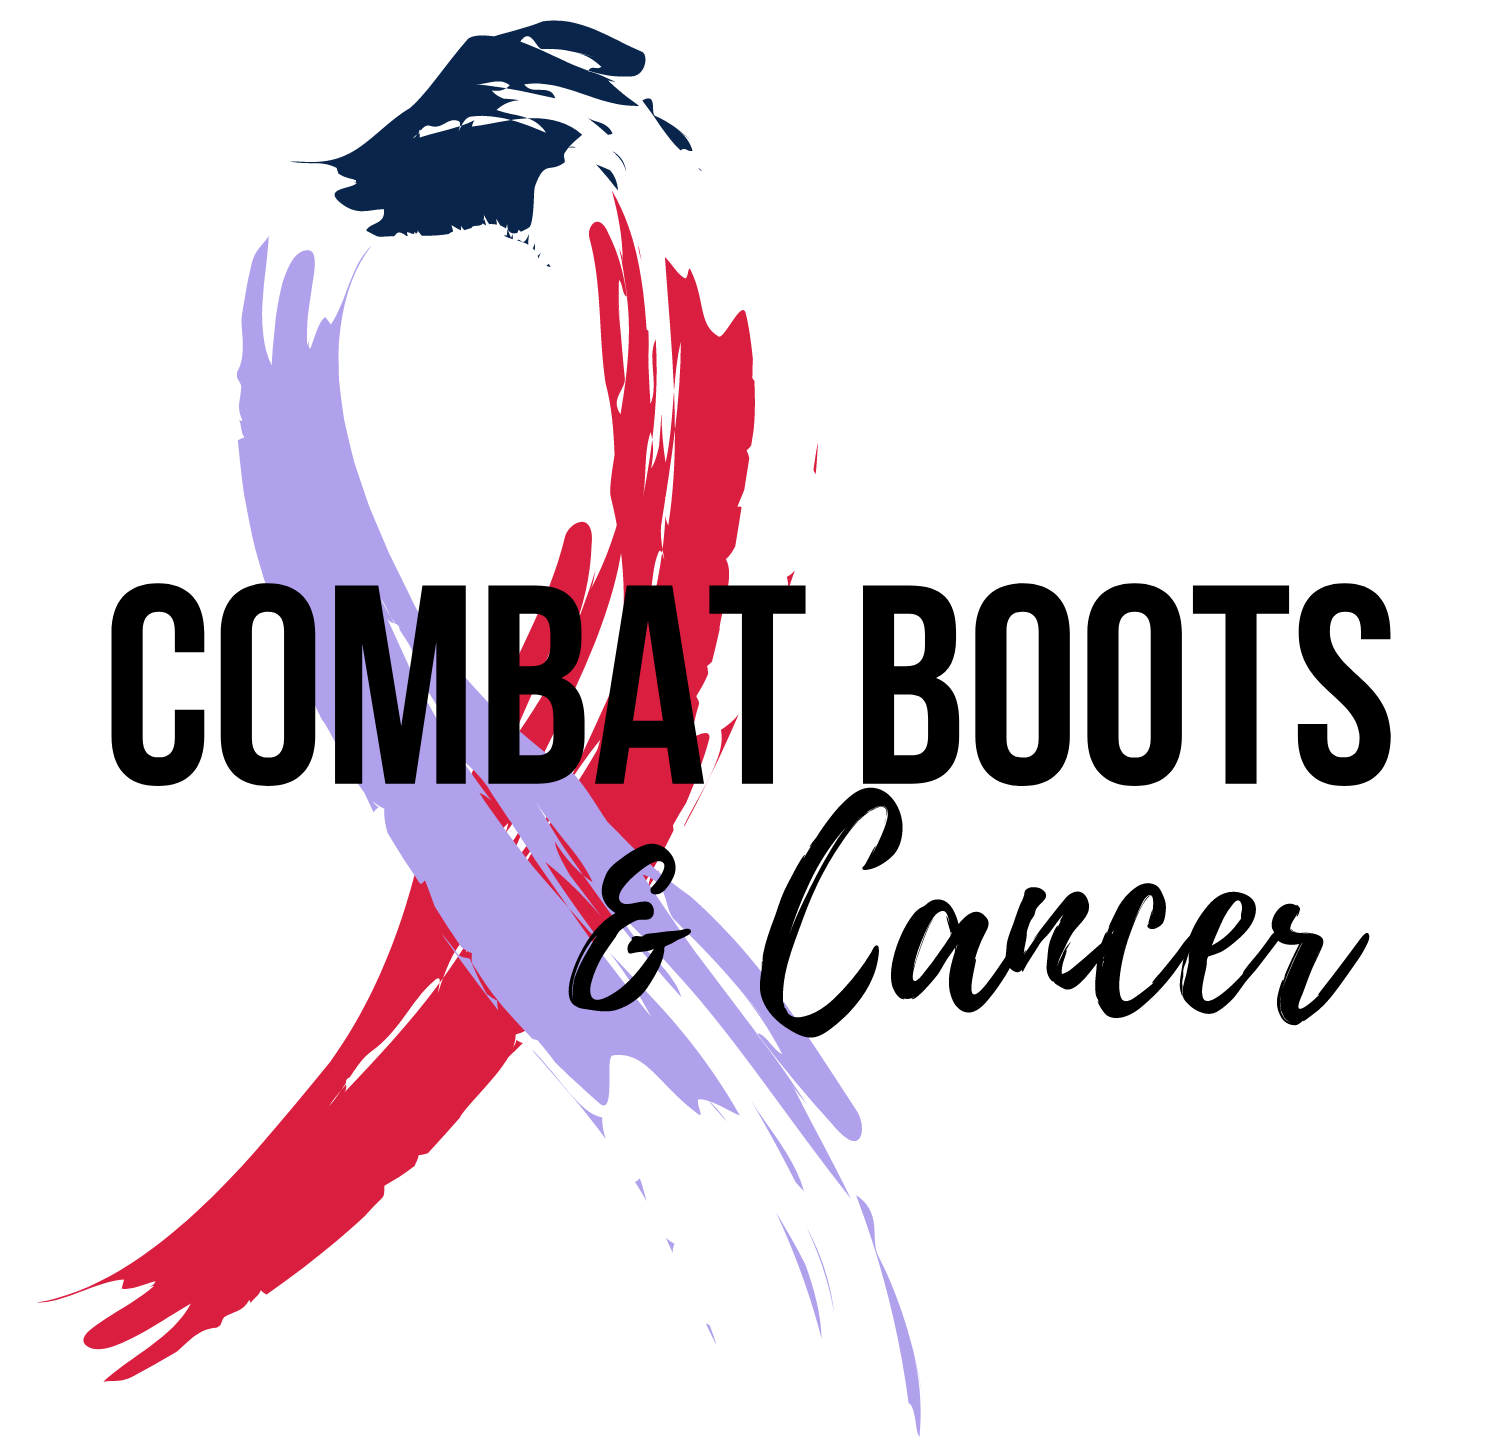 Combat Boots & Cancer